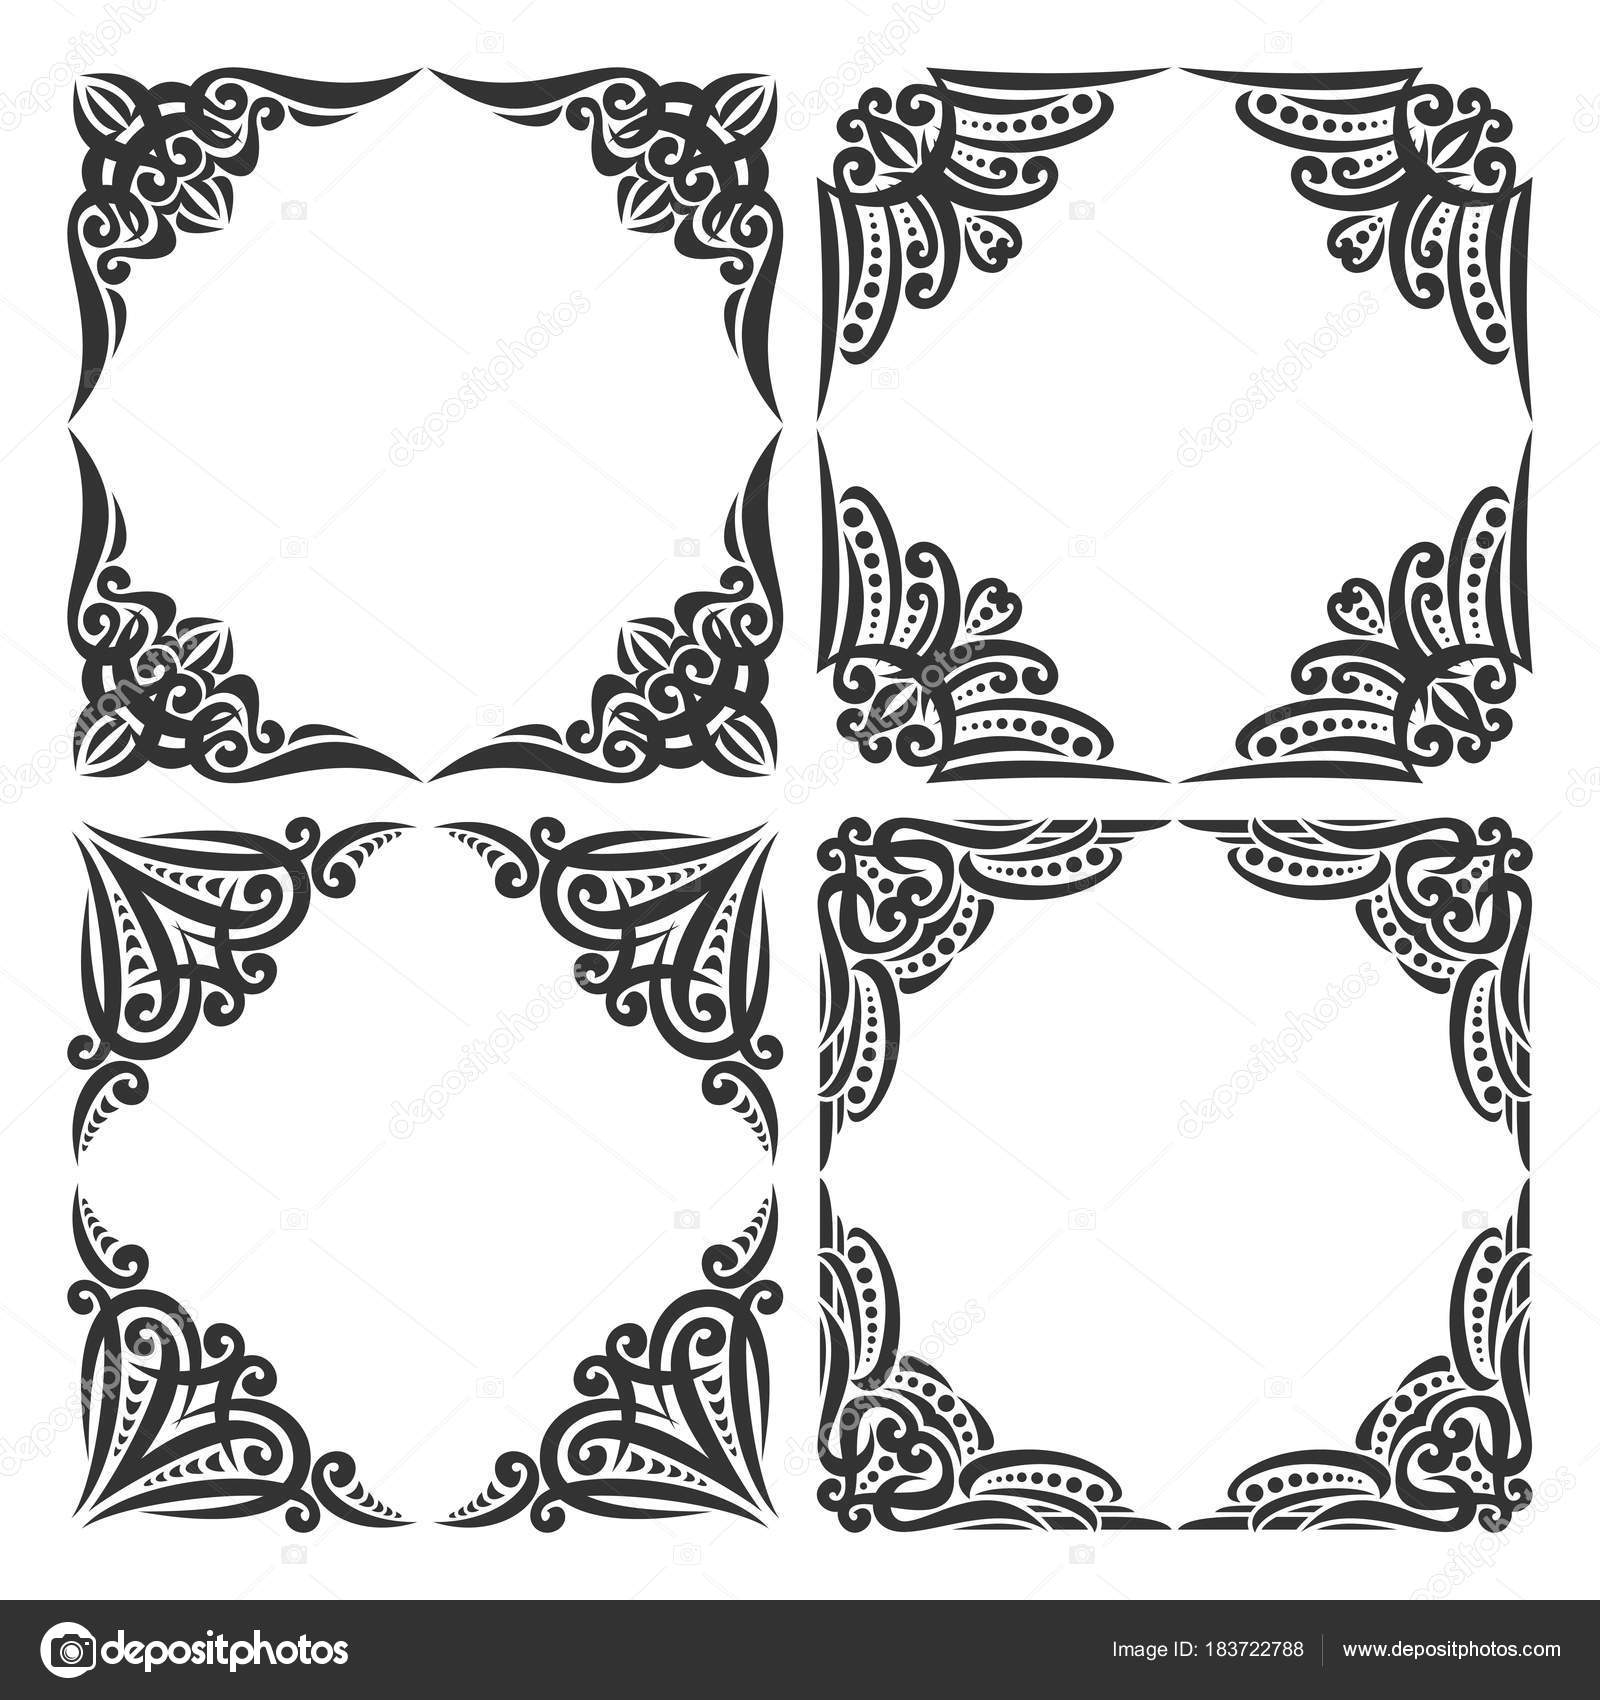 55 Free Thanksgiving Games Crafts Coloring Pages Decor And More besides July 14 Update Carrie Underwood 39s likewise Paper Dolls Of Ancient Japan China India And North American Indians further Elegant Winter Wedding Invitation in addition If Thai Celebrities Were To Transform. on indian table decorations